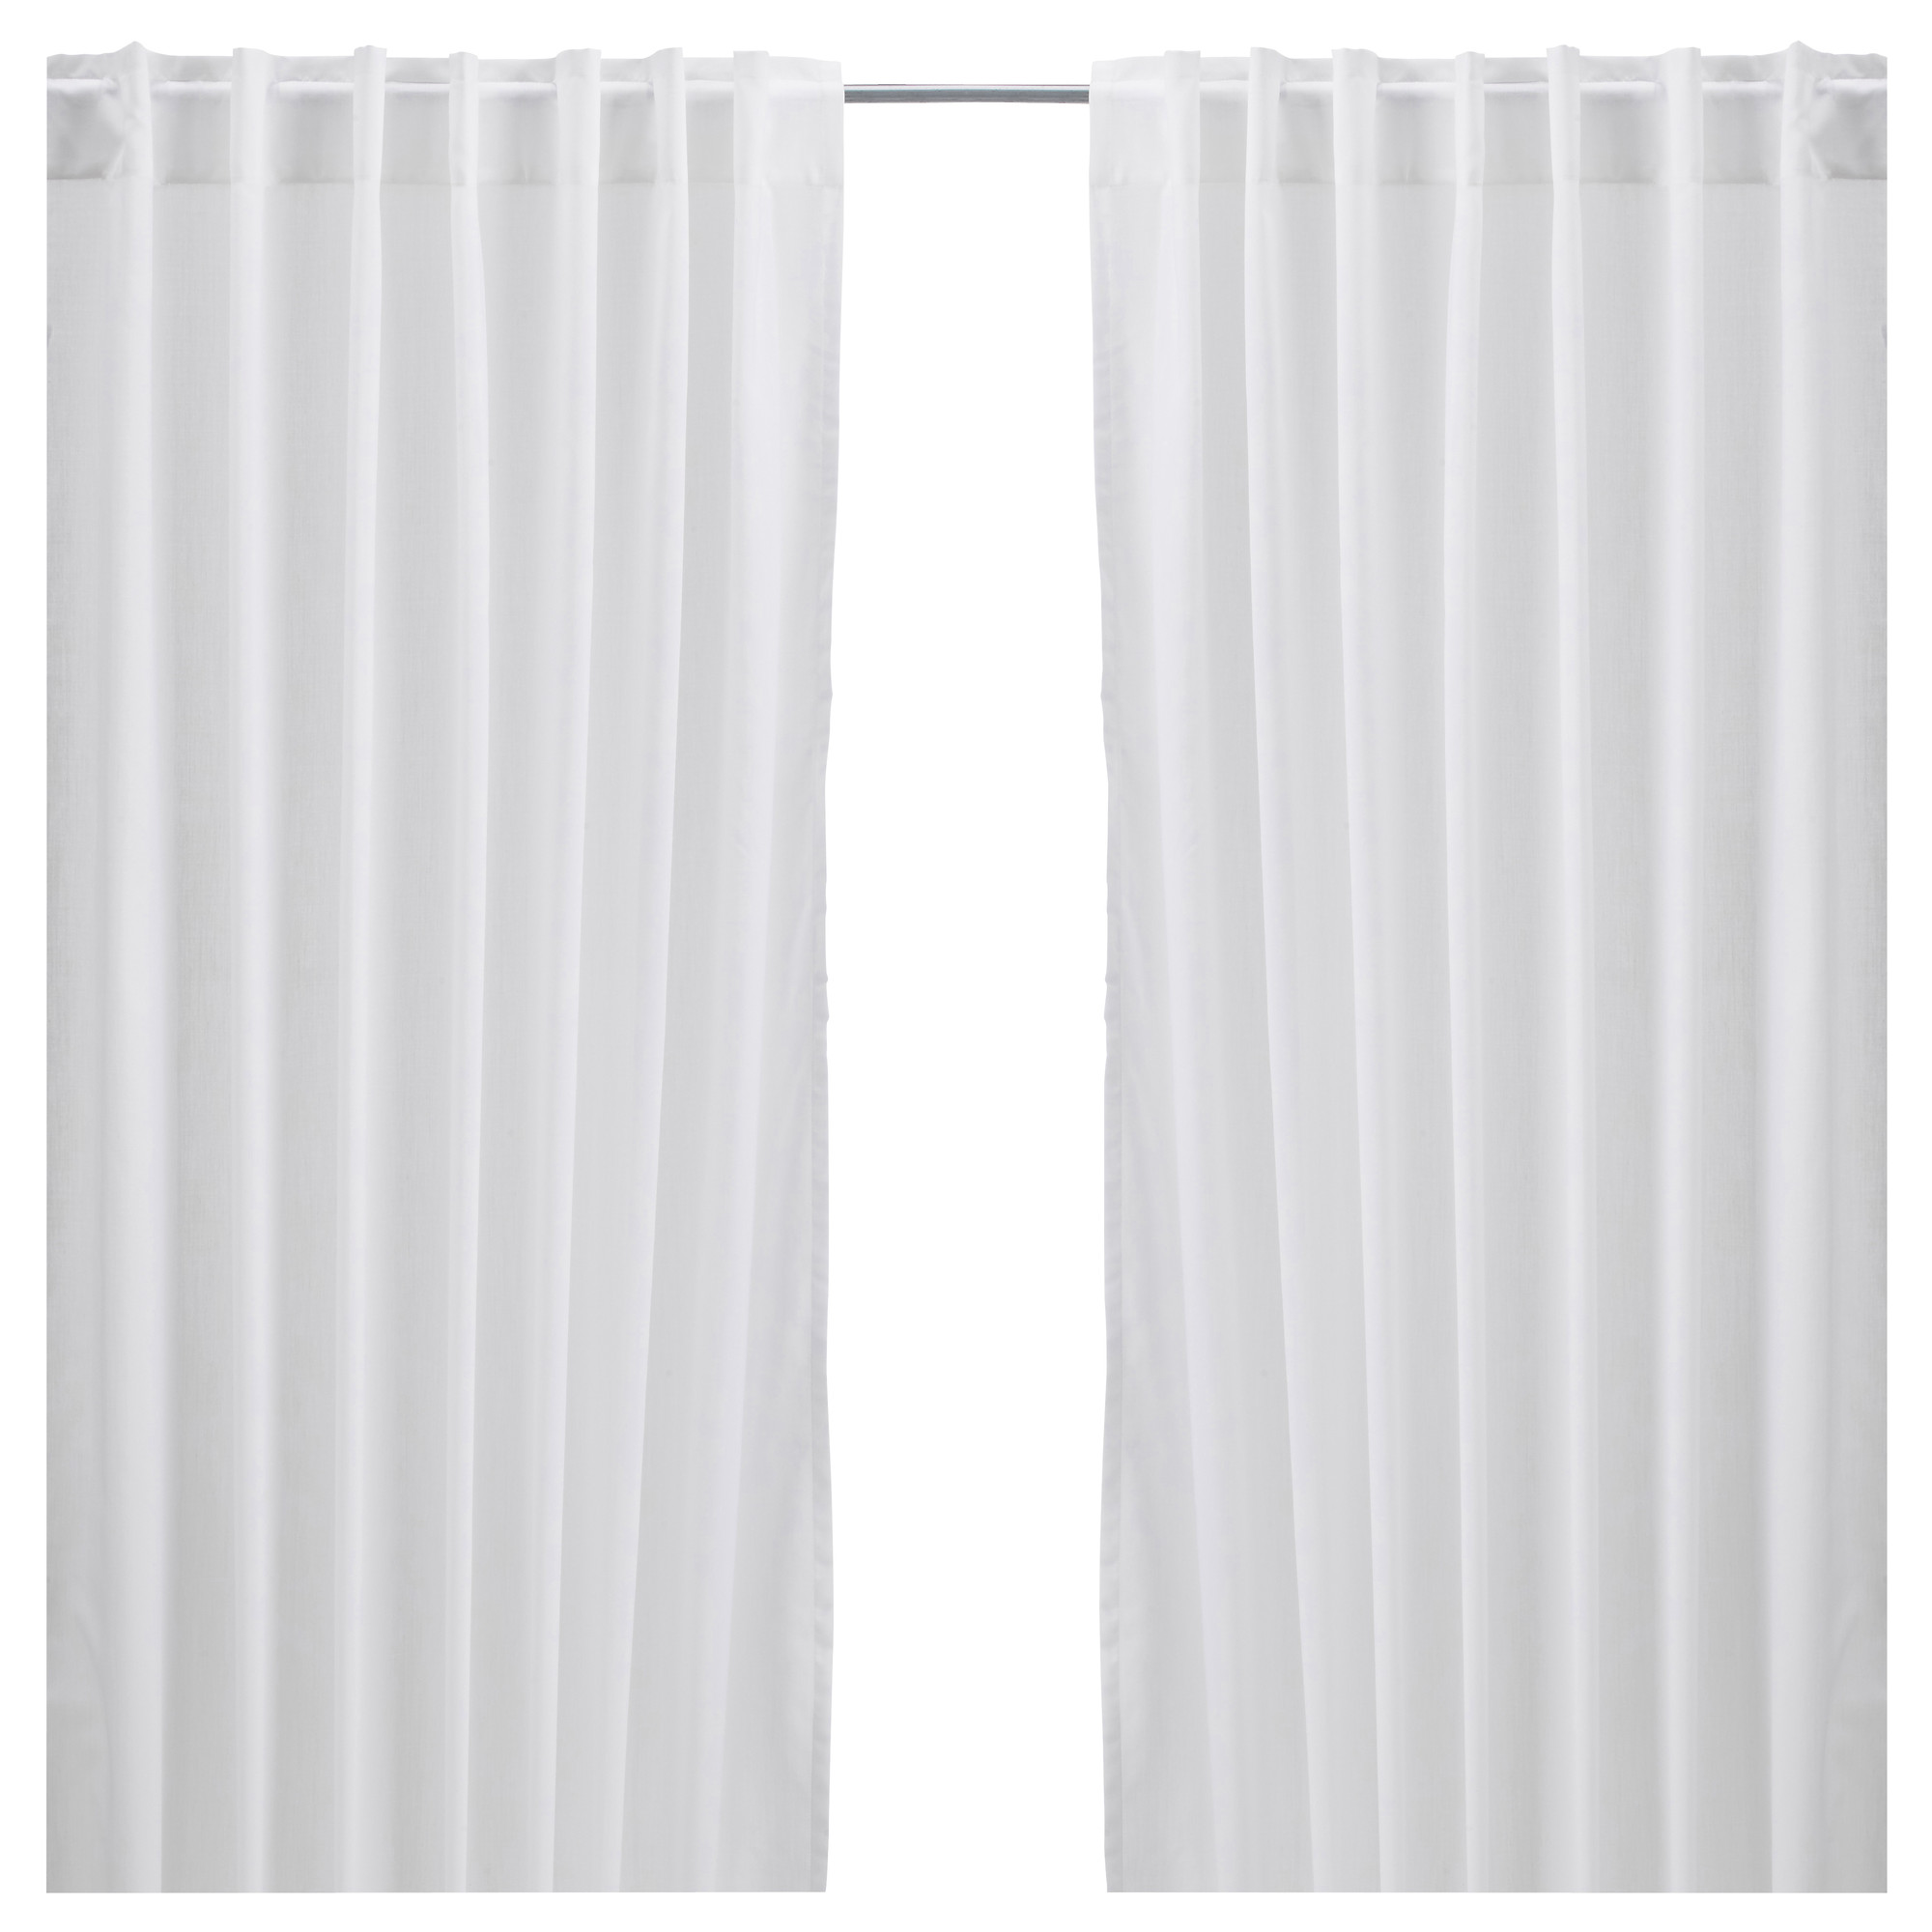 fresh rod curtains sheer s curtain kohls kohl pocket panels of soozone beautiful ideas